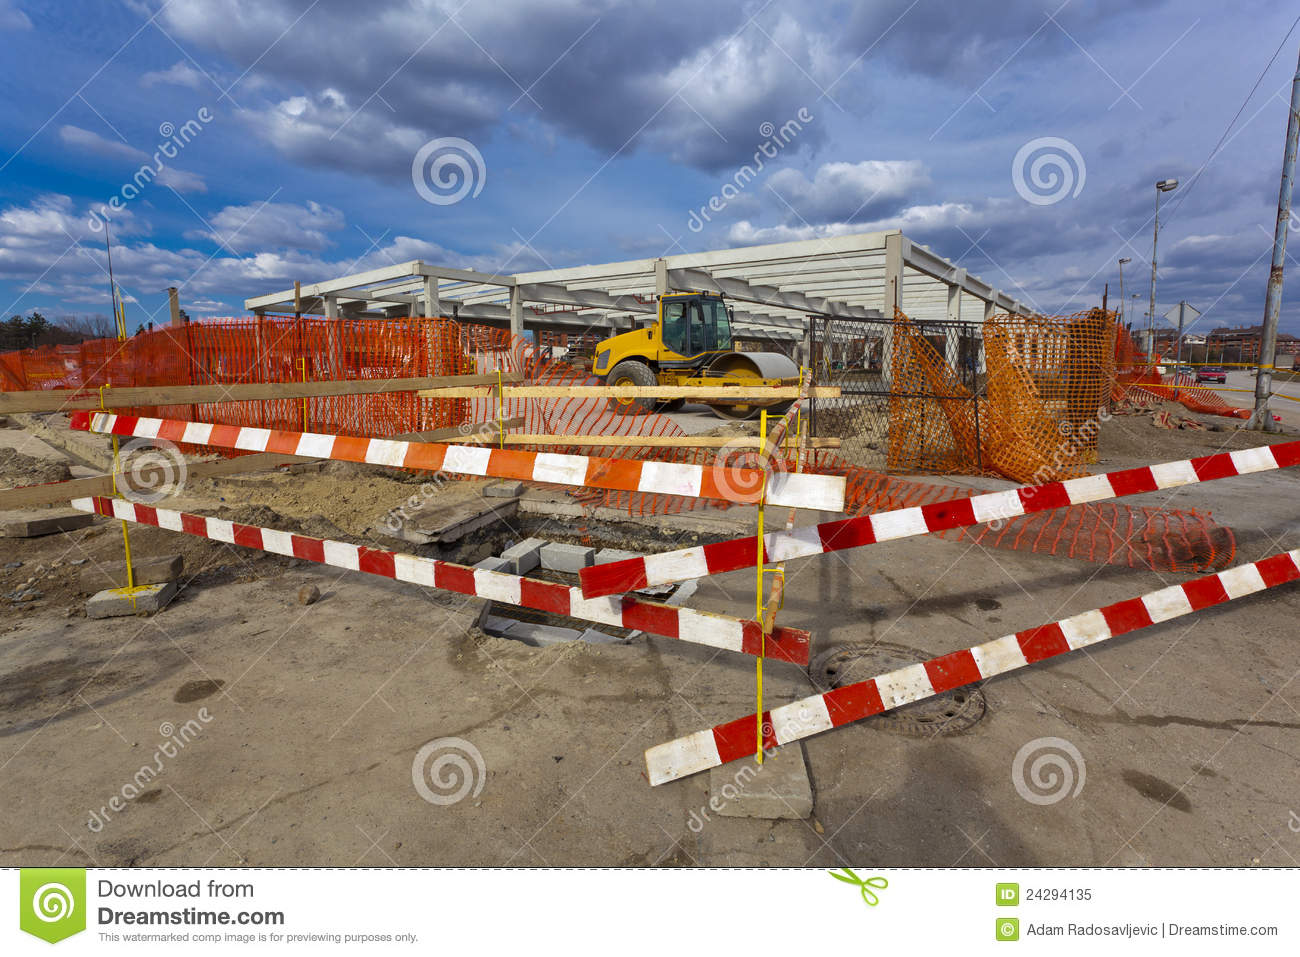 More similar stock images of construction site with fence barrier